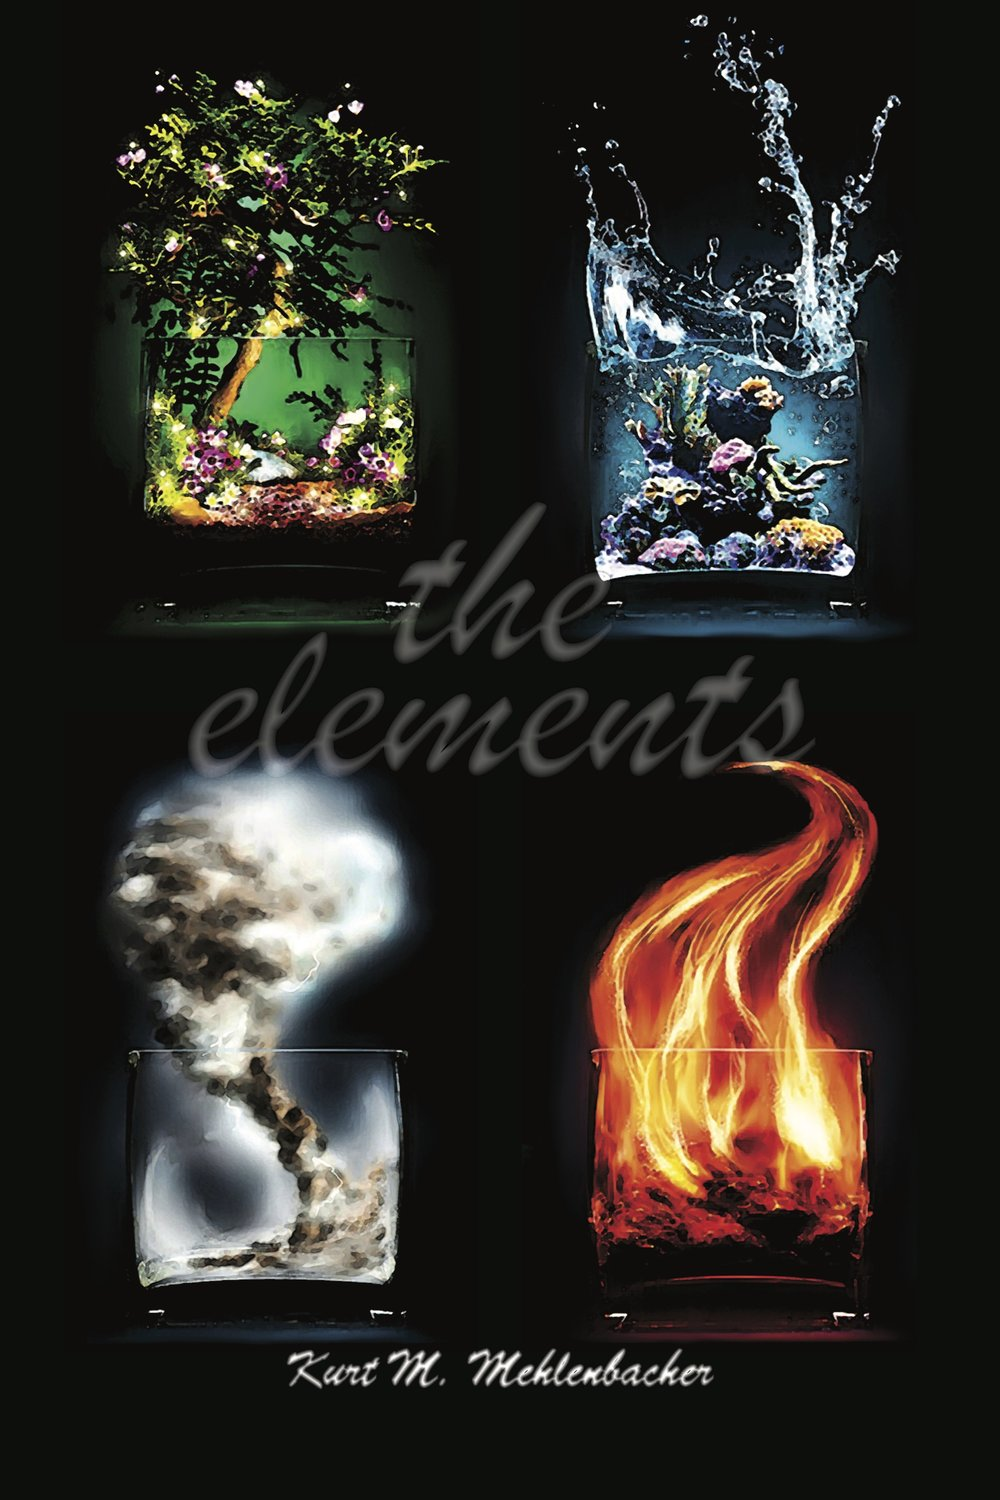 the elements       for large wind ensemble (piccolo, 4 flutes, alto flute, 2 oboes, english horn, 4 Bb clarinets, bass clarinet, 2 bassoons, contrabassoon, soprano saxophone, alto saxophone, tenor saxophone, baritone saxophone, 4 horns, 3 C trumpets, 2 trombones, bass trombone, 2 euphoniums, 2 tubas, percussion [3 players], harp, piano)